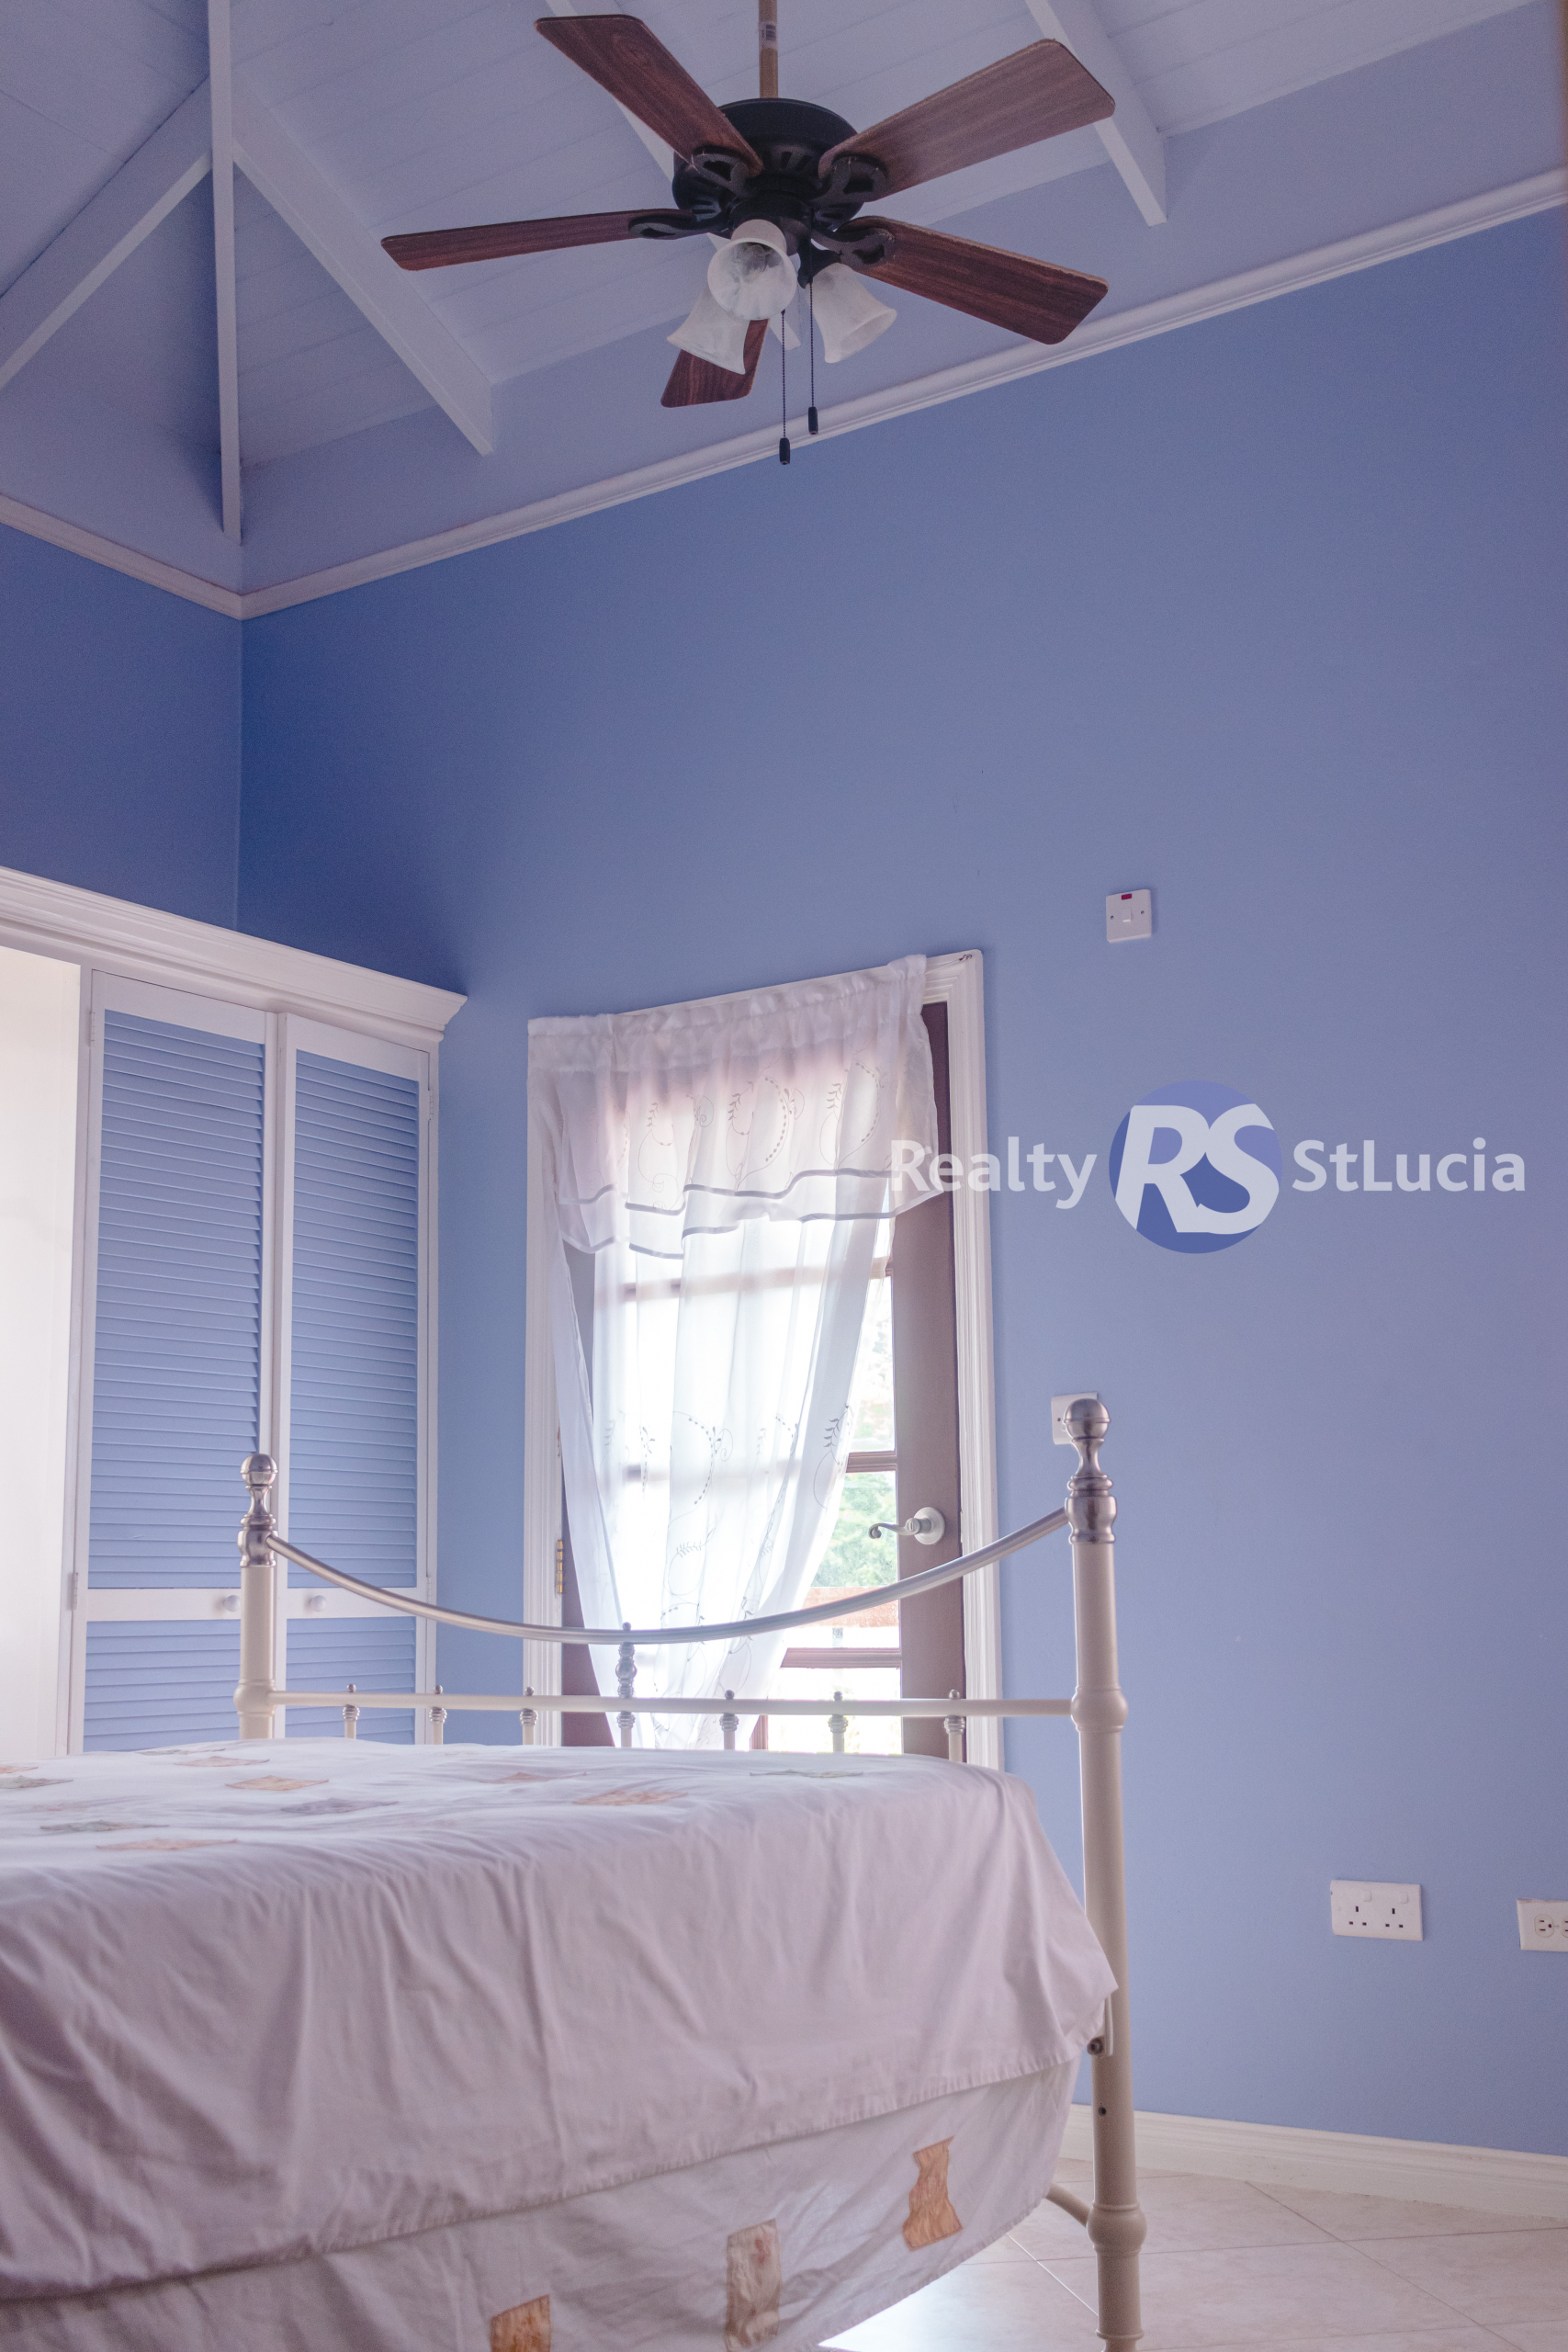 Houses For Sale In Saint. Lucia bed blue